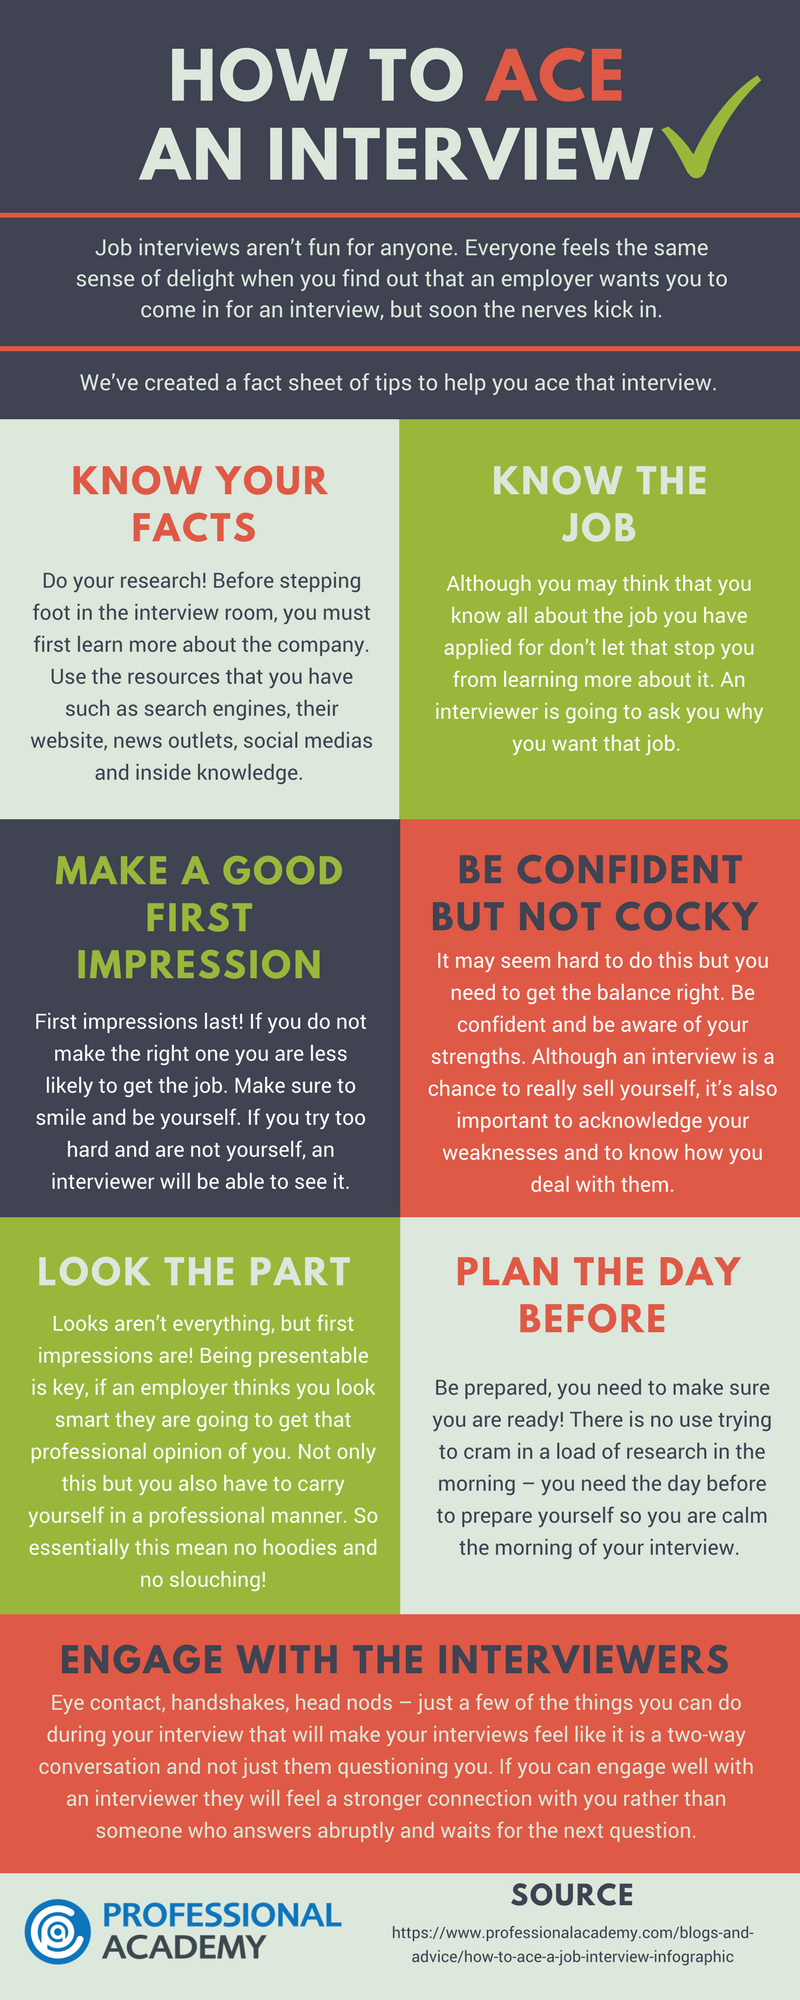 How to Ace a Job Interview - Infographic